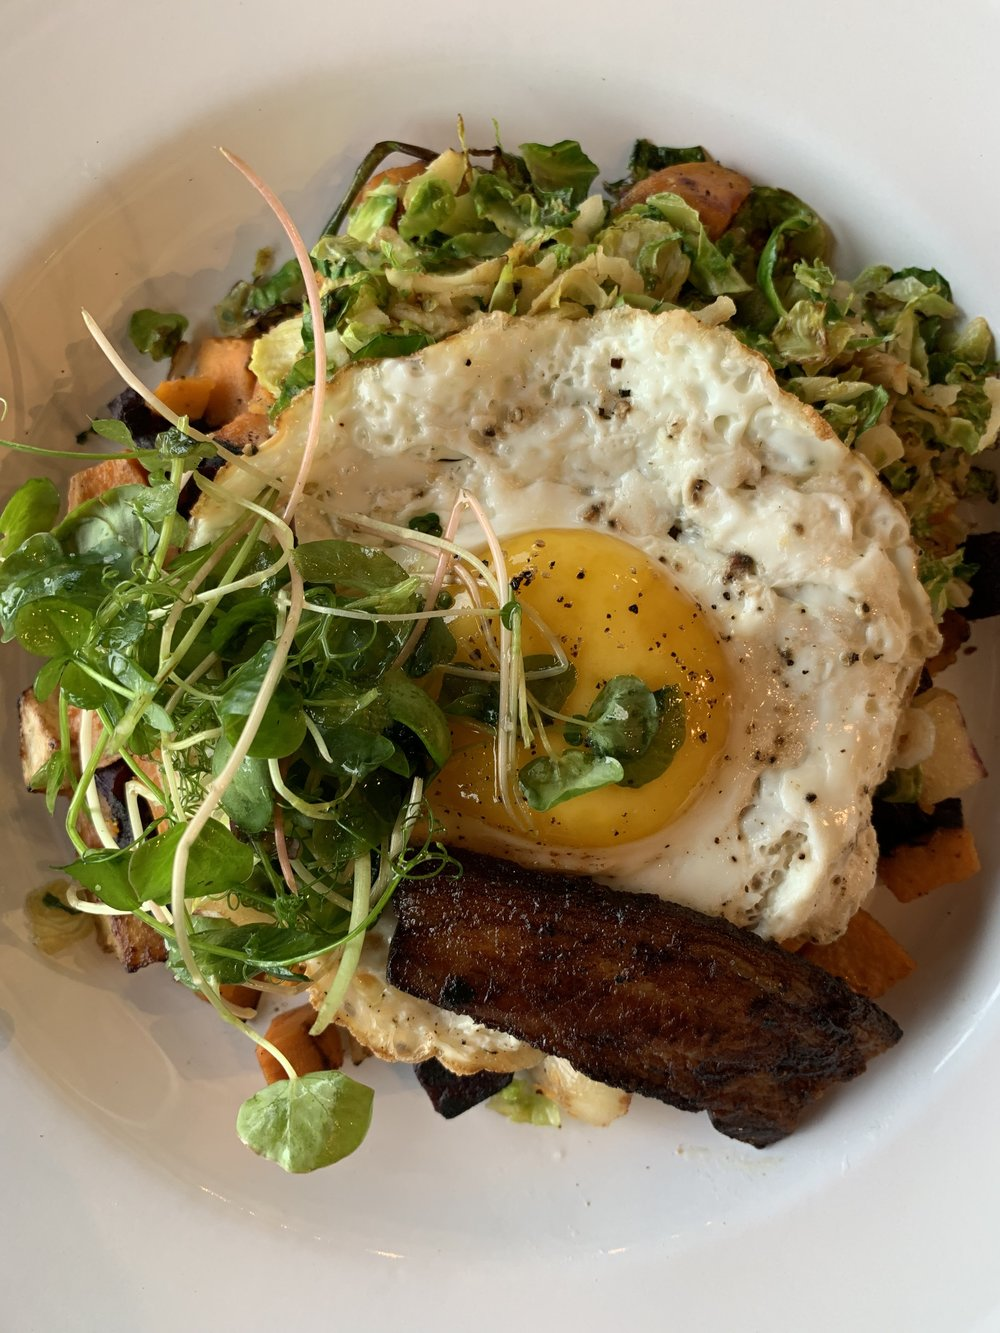 Modern Southern - Mixed potatoes, brussels sprout and apple hash, house bacon or tempeh sausage, fried eggHave you ever seen a fried egg so perfect?